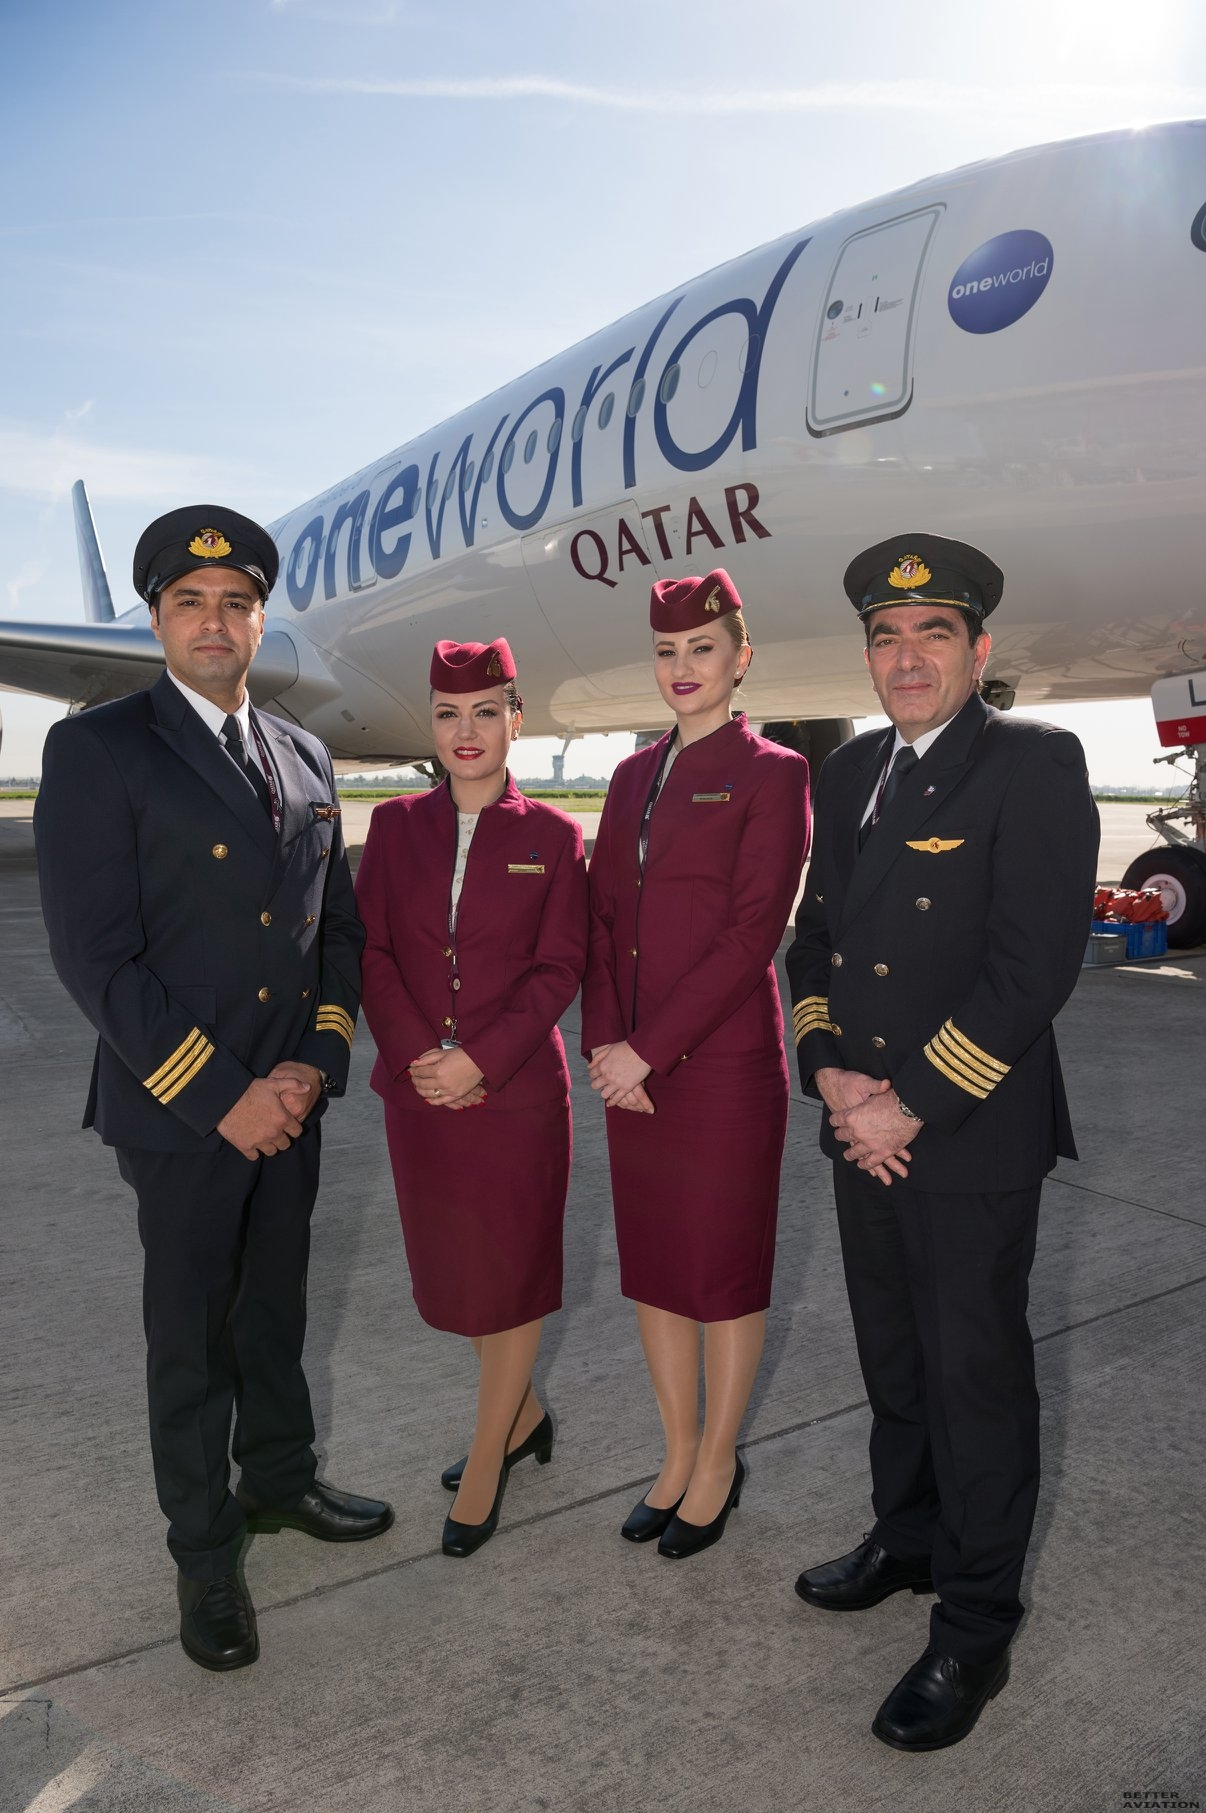 Qatar airways cabin crew recruitment event bangkok october 2018 better aviation - Qatar airways paris office ...